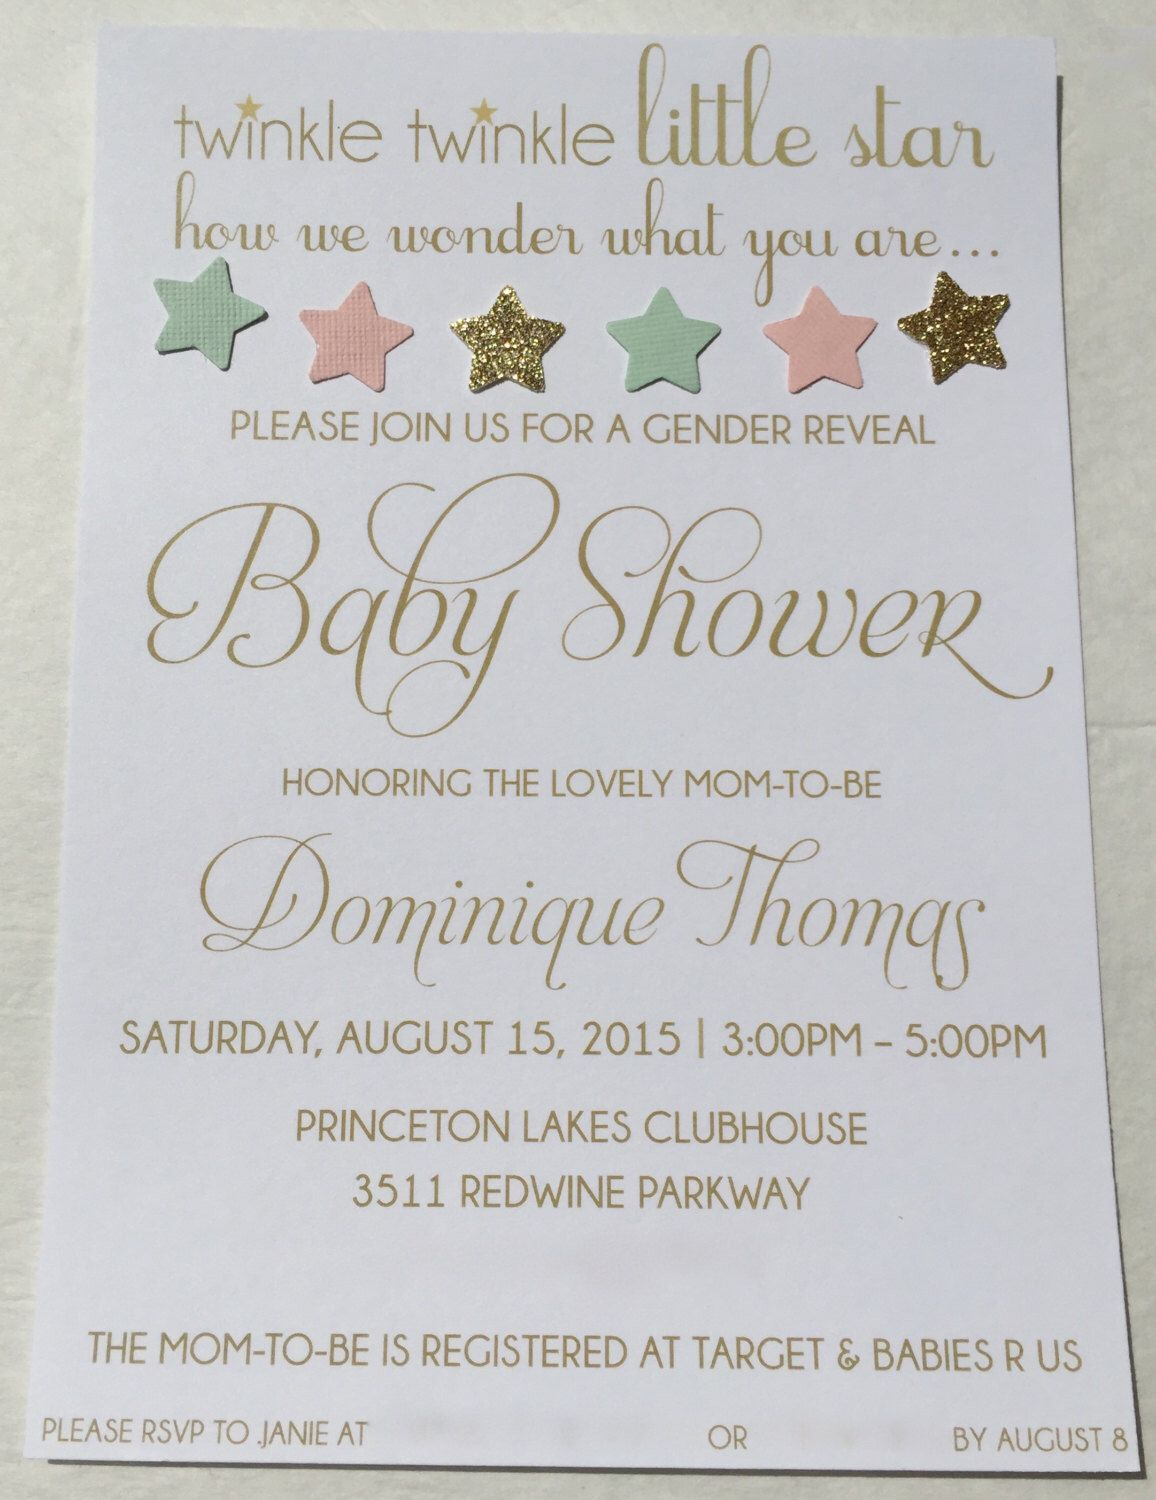 Gender Reveal Baby Shower Party Invitation Mint Light Pink Peach Gold  Glitter Twinkle Twinkle Little Star